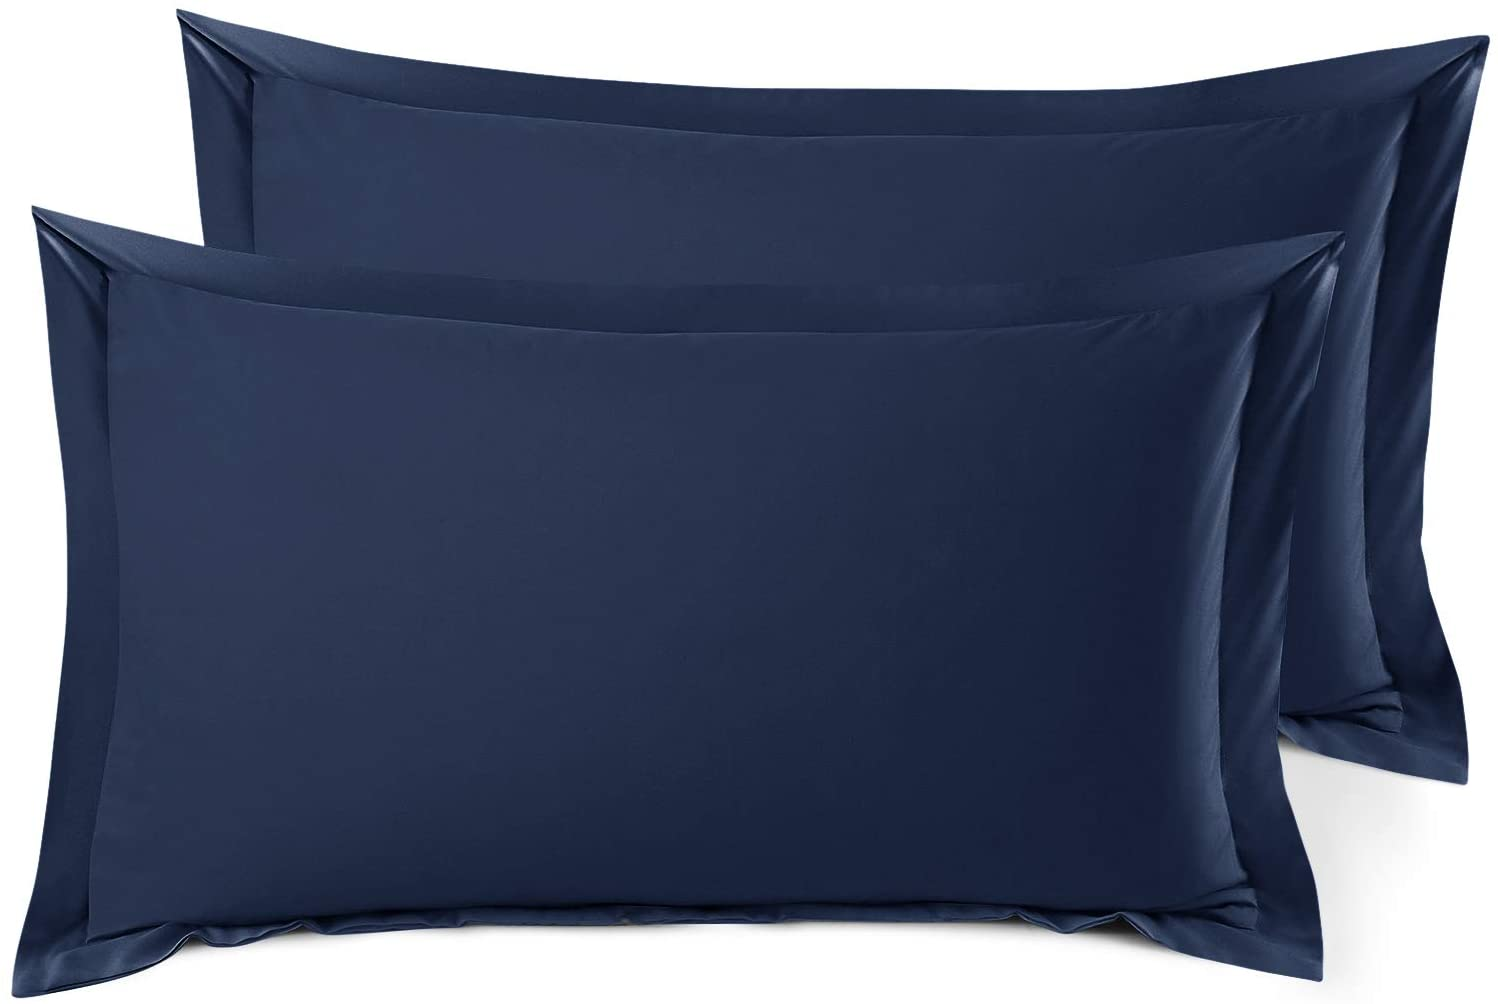 Nestl Bedding Soft Pillow Shams Set of 2 - Double Brushed Microfiber Hypoallergenic Pillow Covers - Hotel Style Premium Bed Pillow Cases, King - Navy